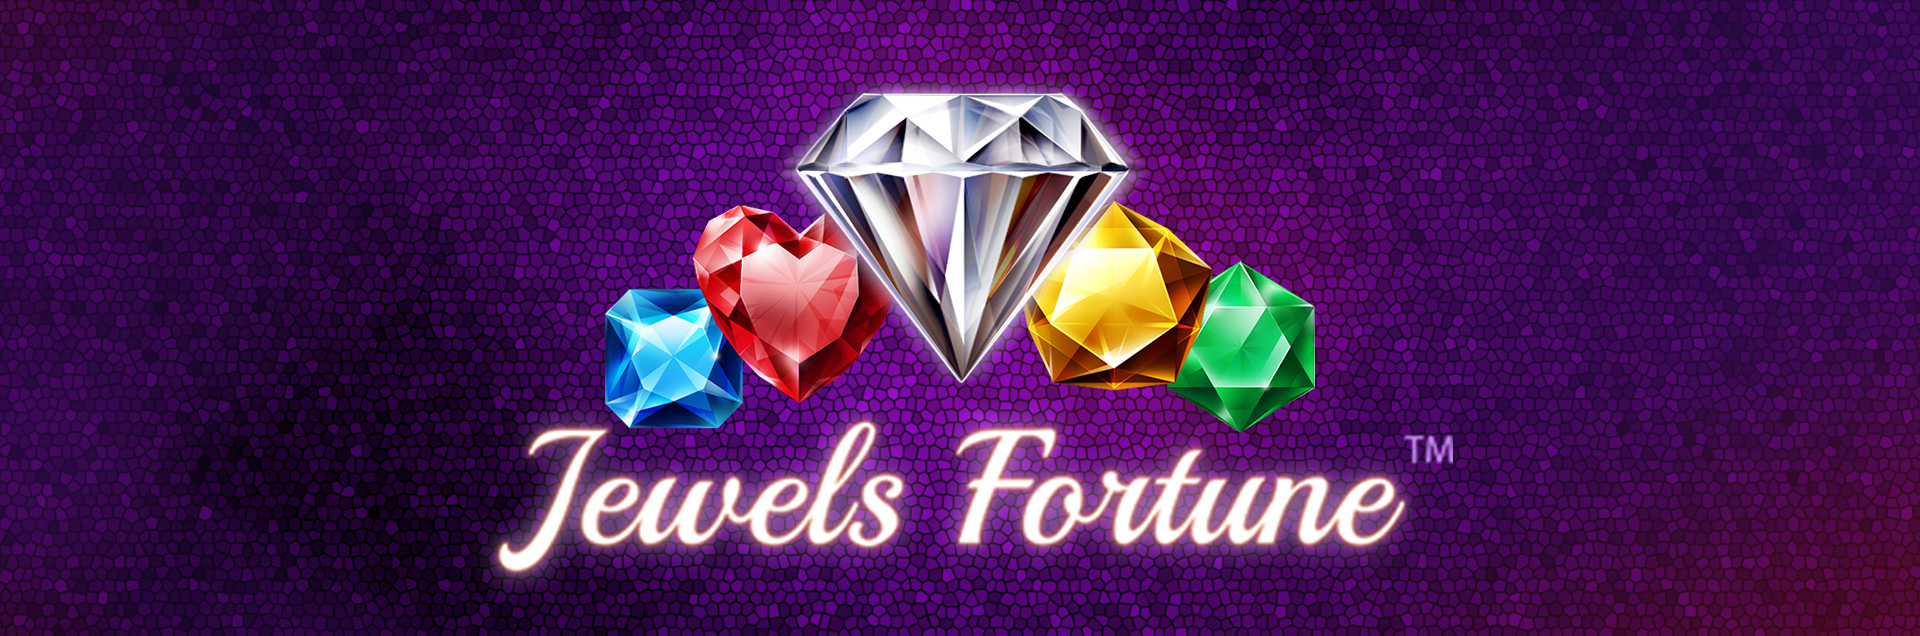 Jewels Fortune header